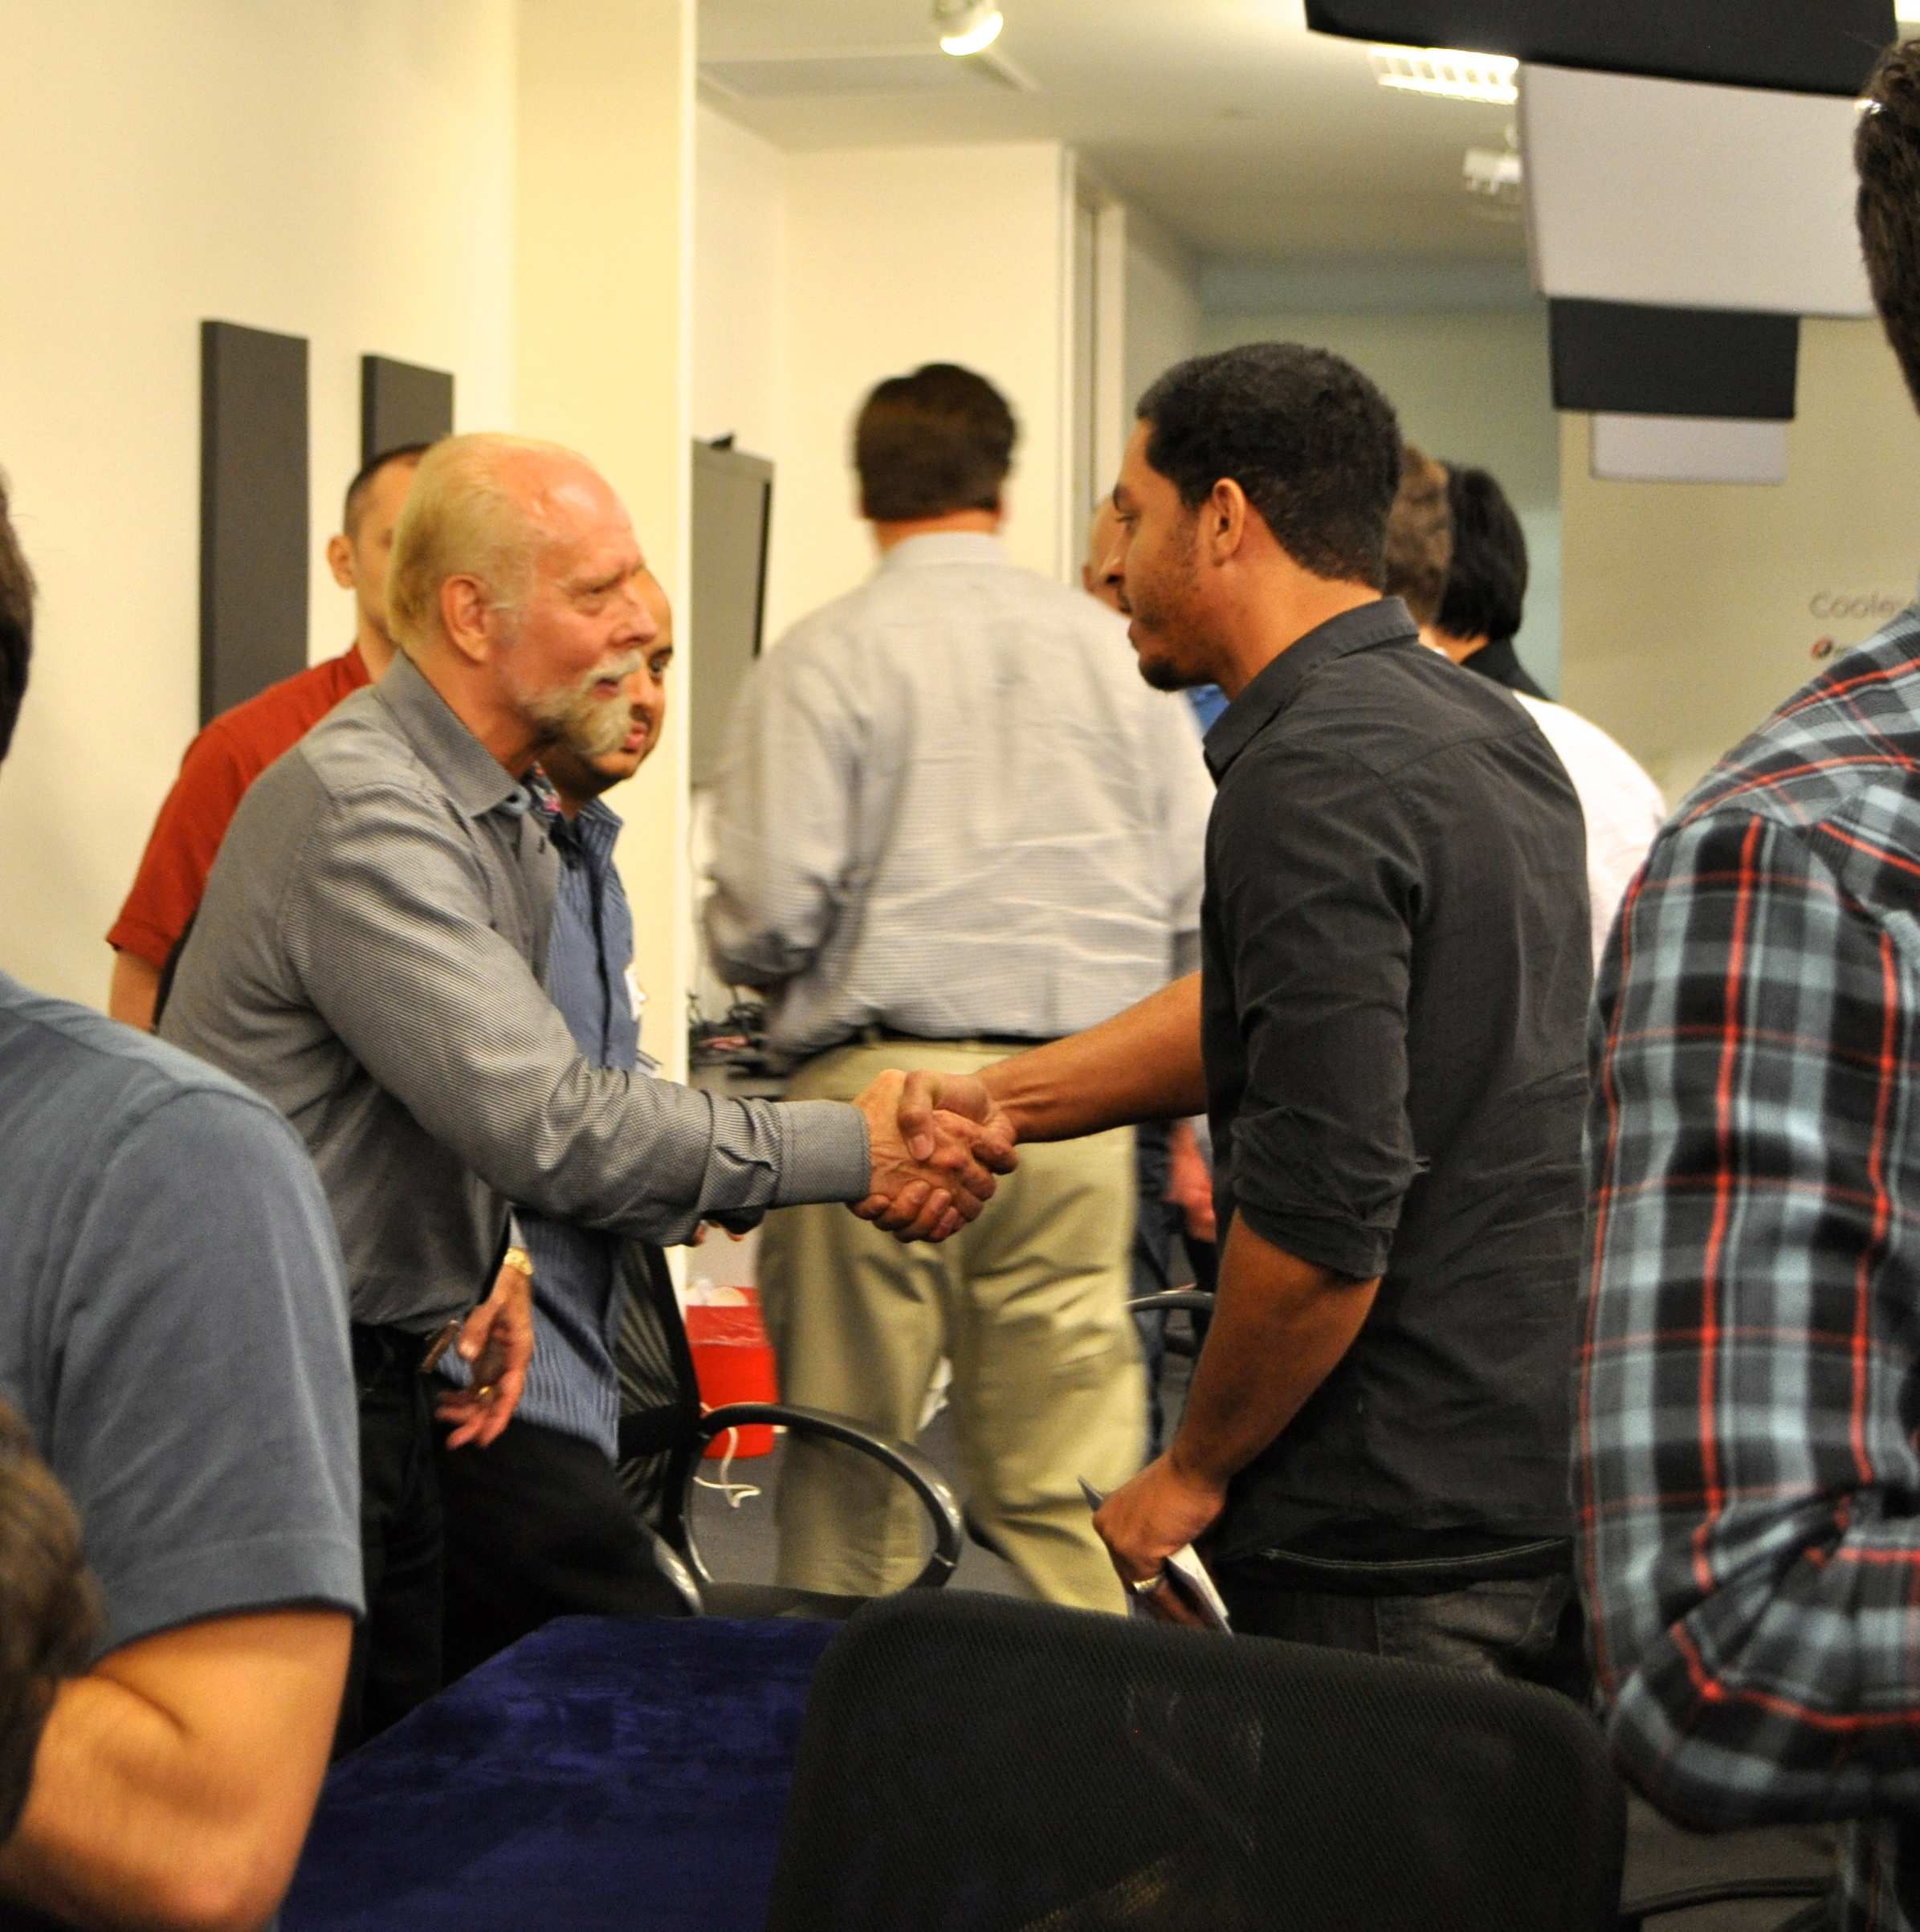 Richard Turner shakes hands with an audience member at the private event at Geekdom last week. Photo by Iris Dimmick.